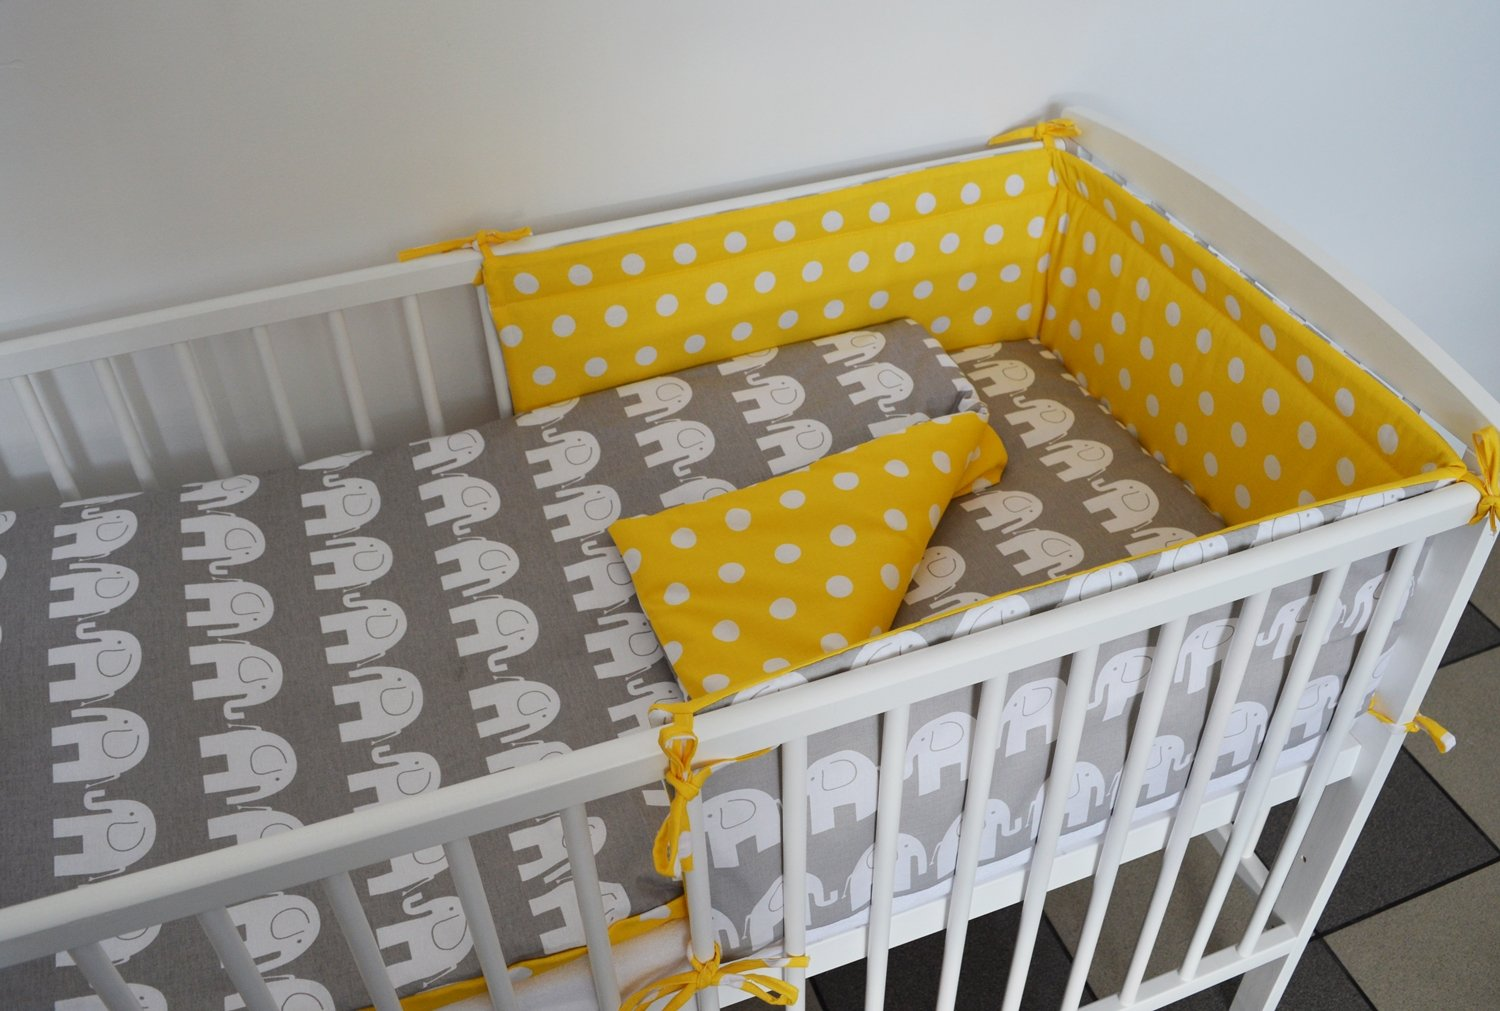 5 pc Baby Bedding Set for COT 120X60 OR COT Bed 140X70cm Inc Duvet+Pillow+Duvet Cover+Pillow CASE Bumper COT 120X60, Grey Elephant - Yellow with DOTS - Reversible